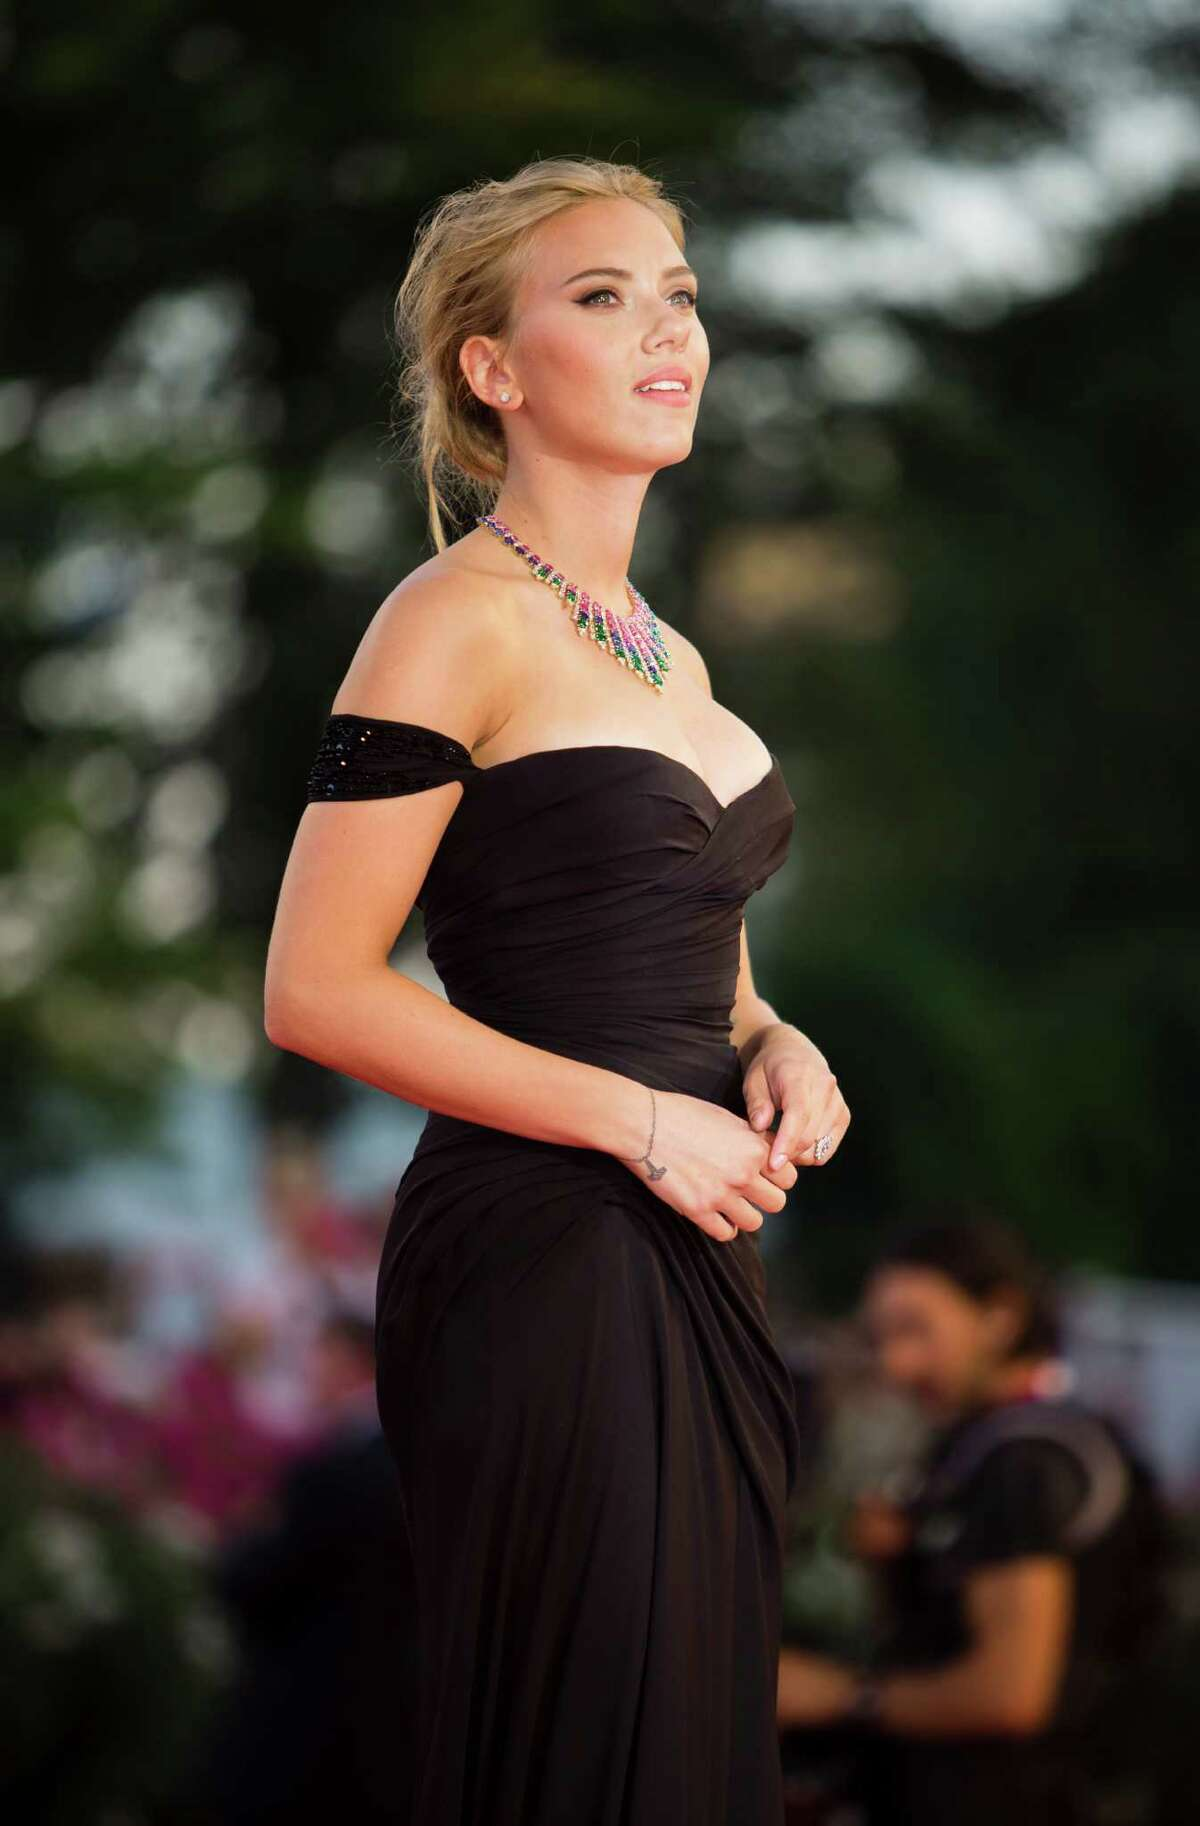 Actress Scarlett Johansson arrives on the red carpet for the screening of the film Under The Skin at the 70th edition of the Venice Film Festival held from Aug. 28 through Sept. 7, in Venice, Italy, Tuesday, Sept. 3, 2013.